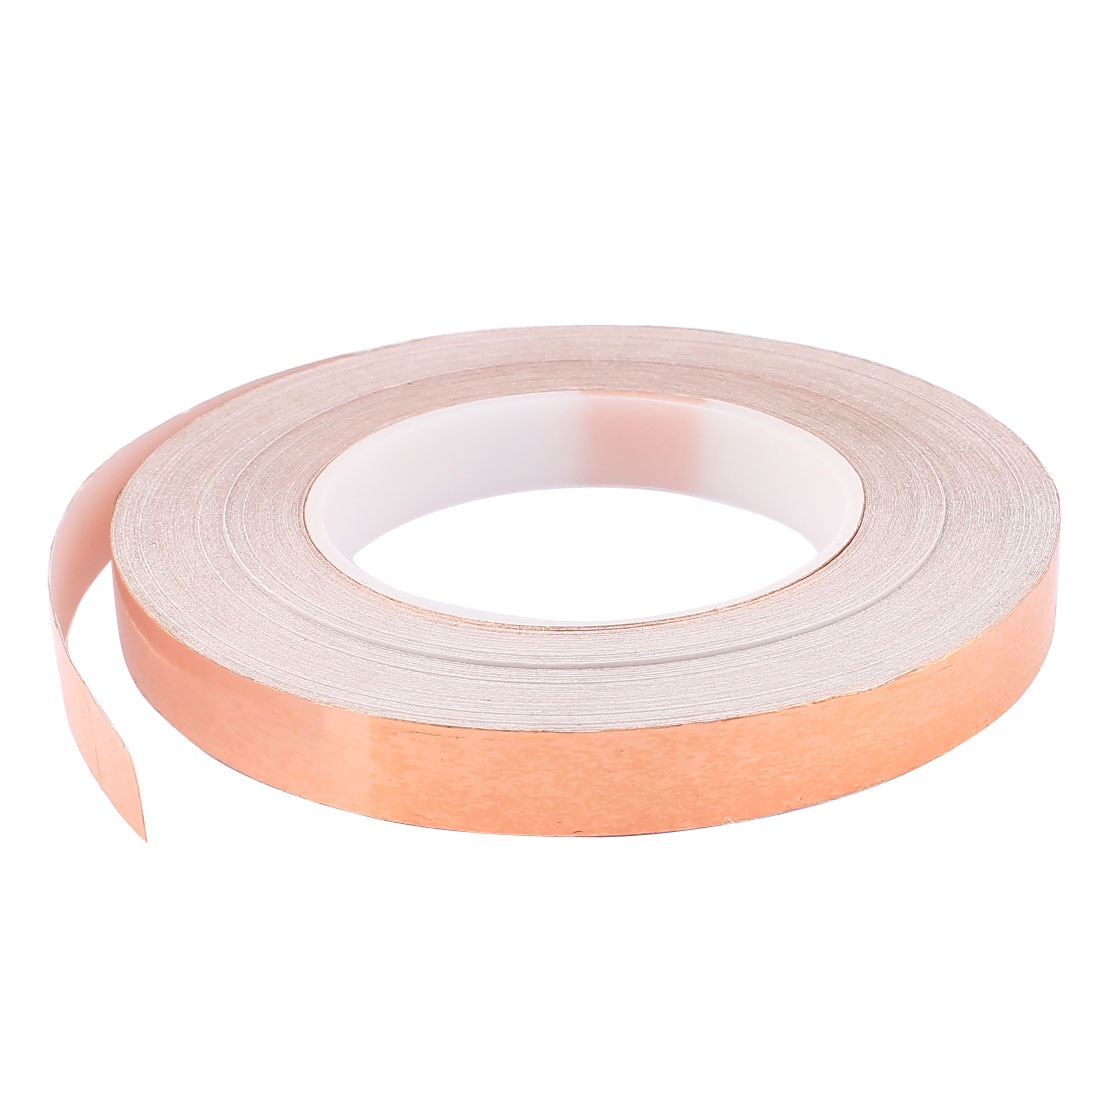 15mm x 50m Roll EMI Copper Foil Heating Duct Adhesive Sealing Tape